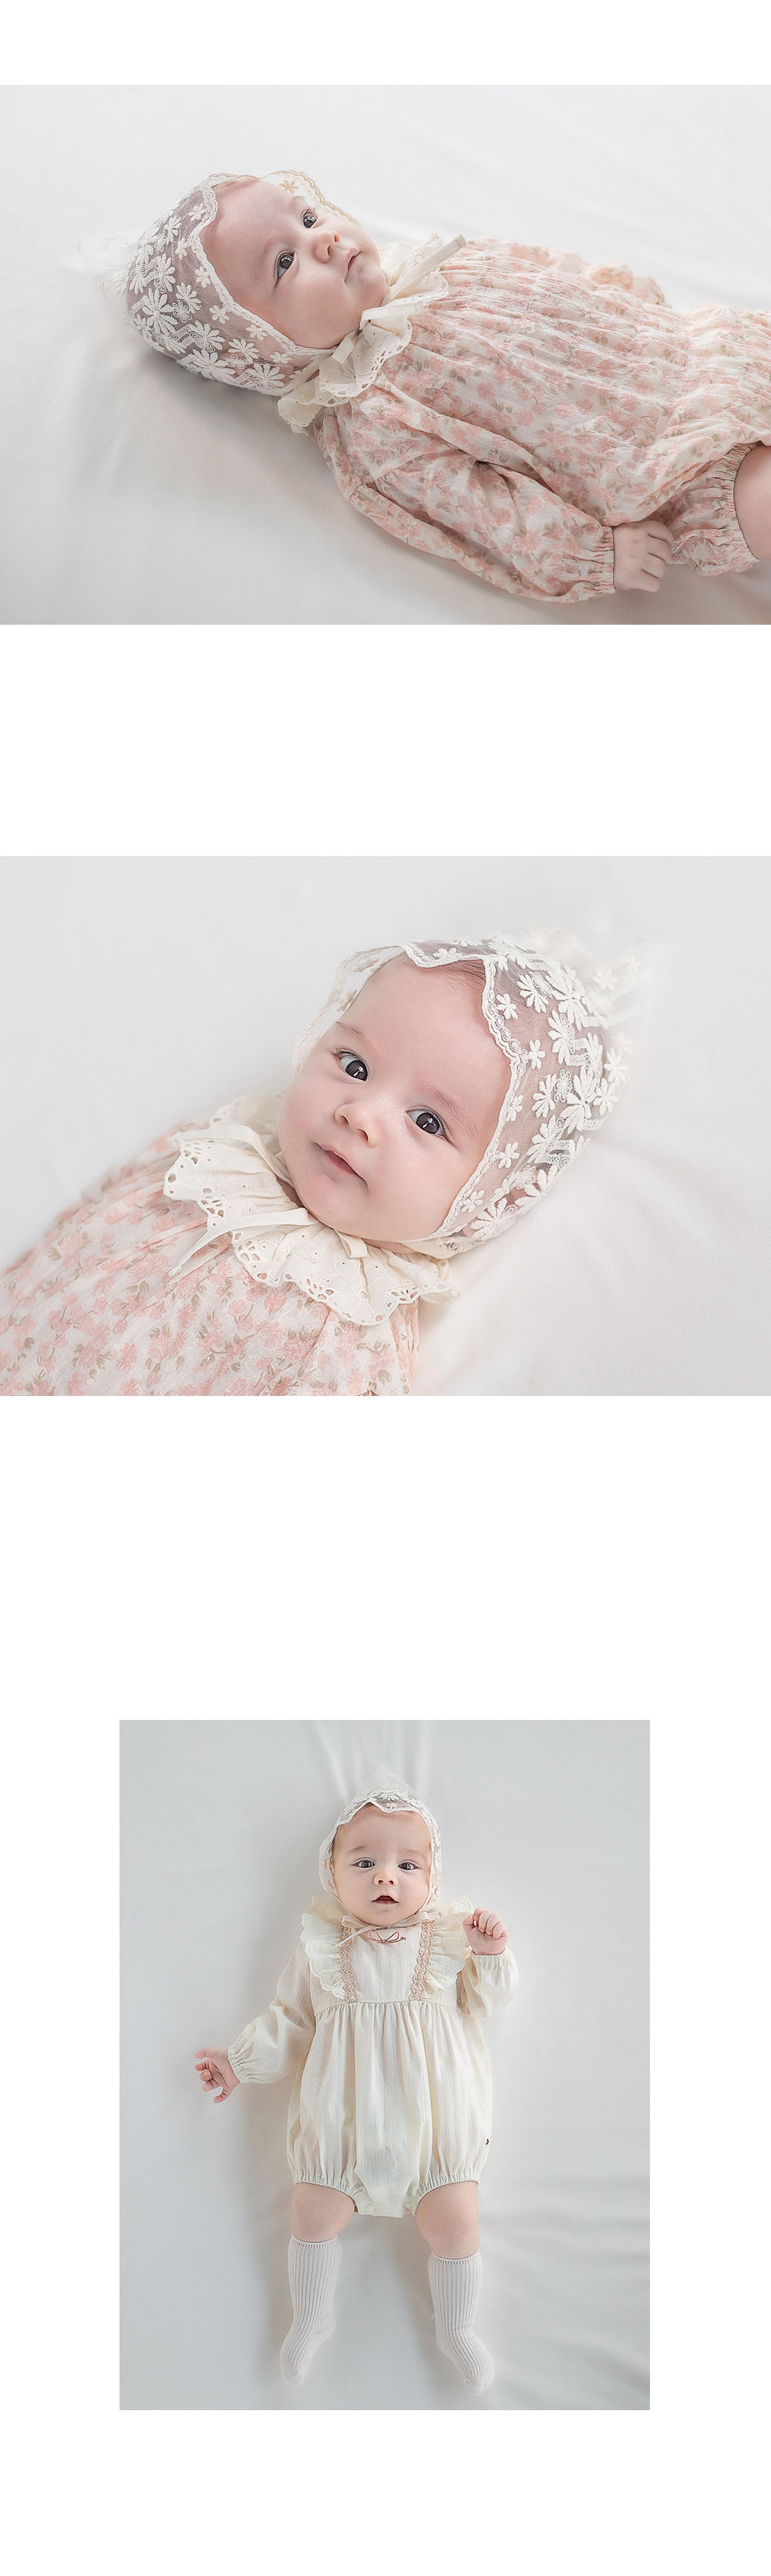 HAPPY PRINCE - Korean Children Fashion - #Kfashion4kids - Benjamin Lace Bonnet - 5